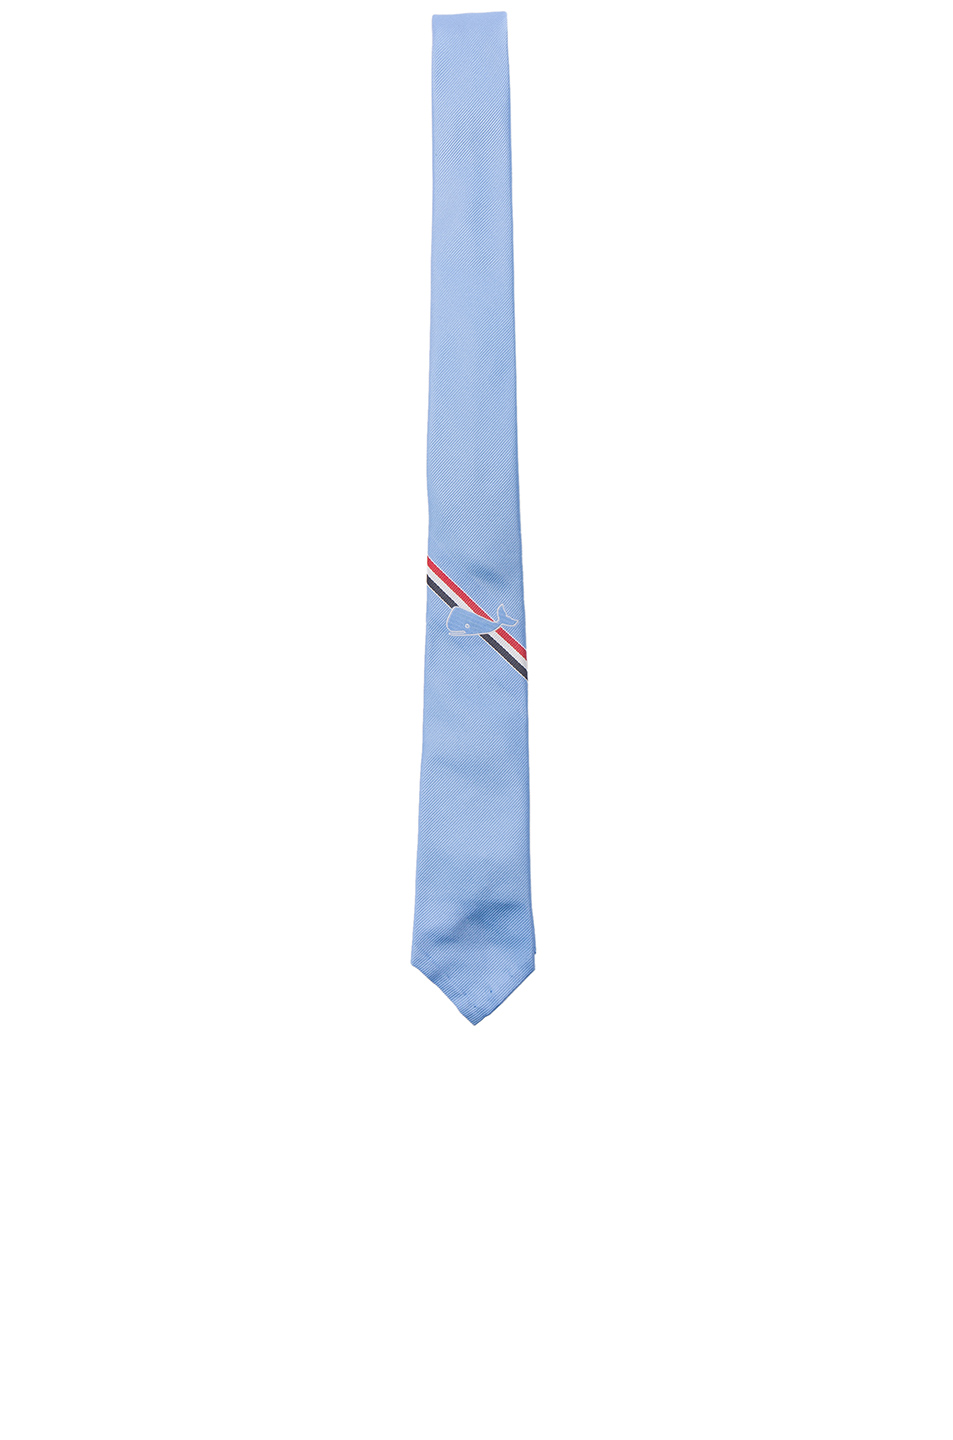 Thom Browne Classic Whale Tie in Blue